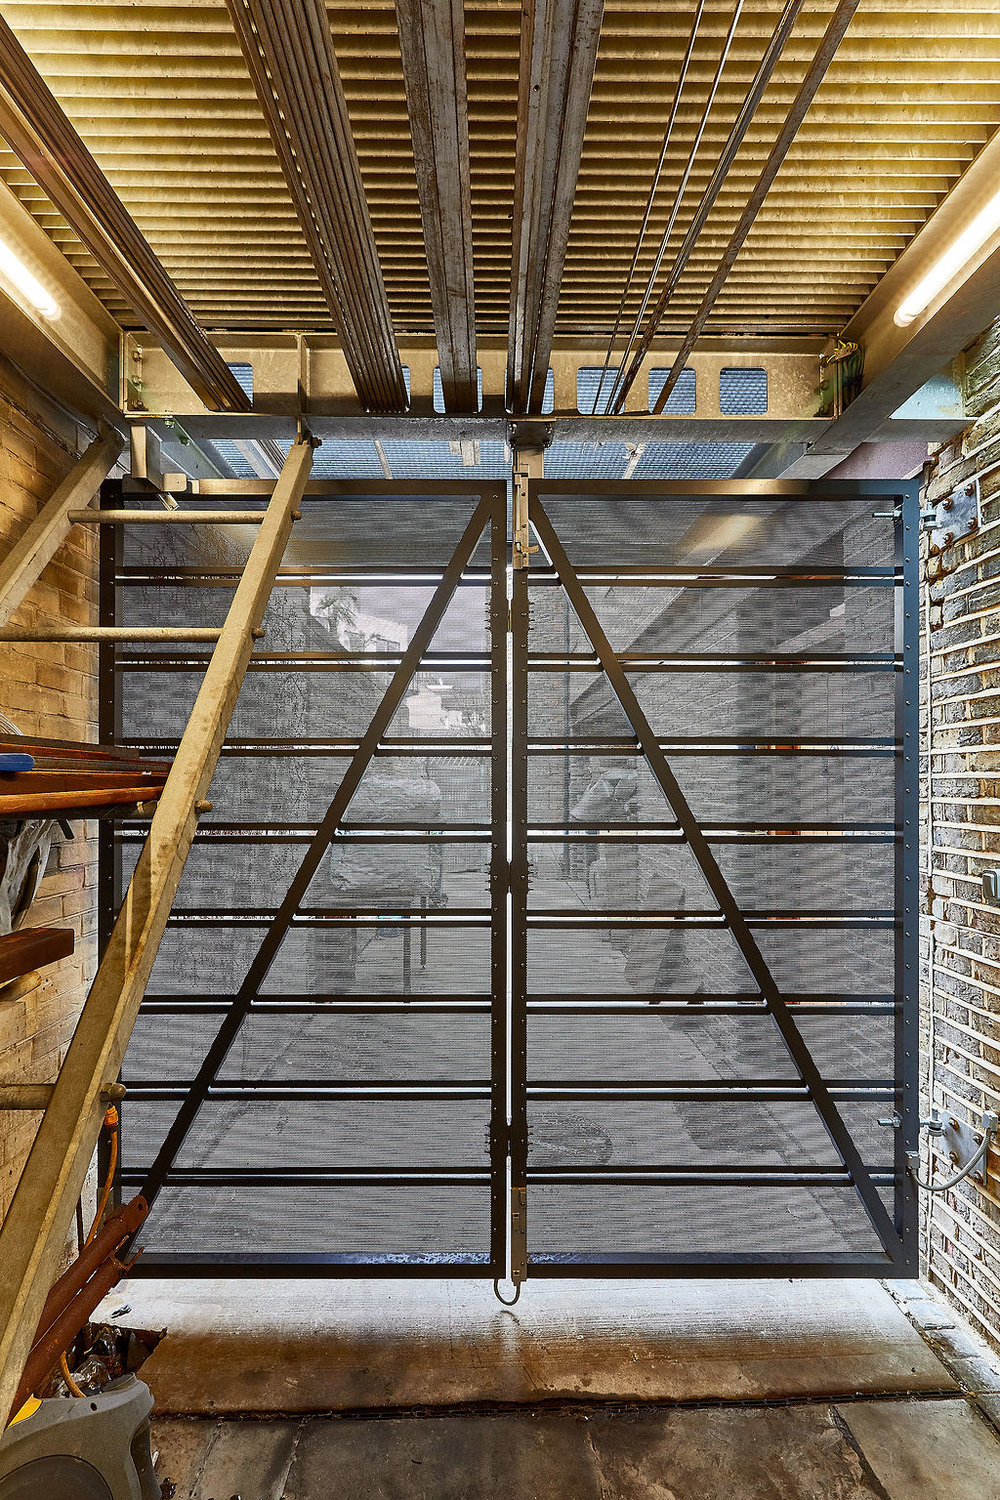 The alleyway gates under the extension were designed with perforated aluminium sheets to maintain the visual permeability at both levels